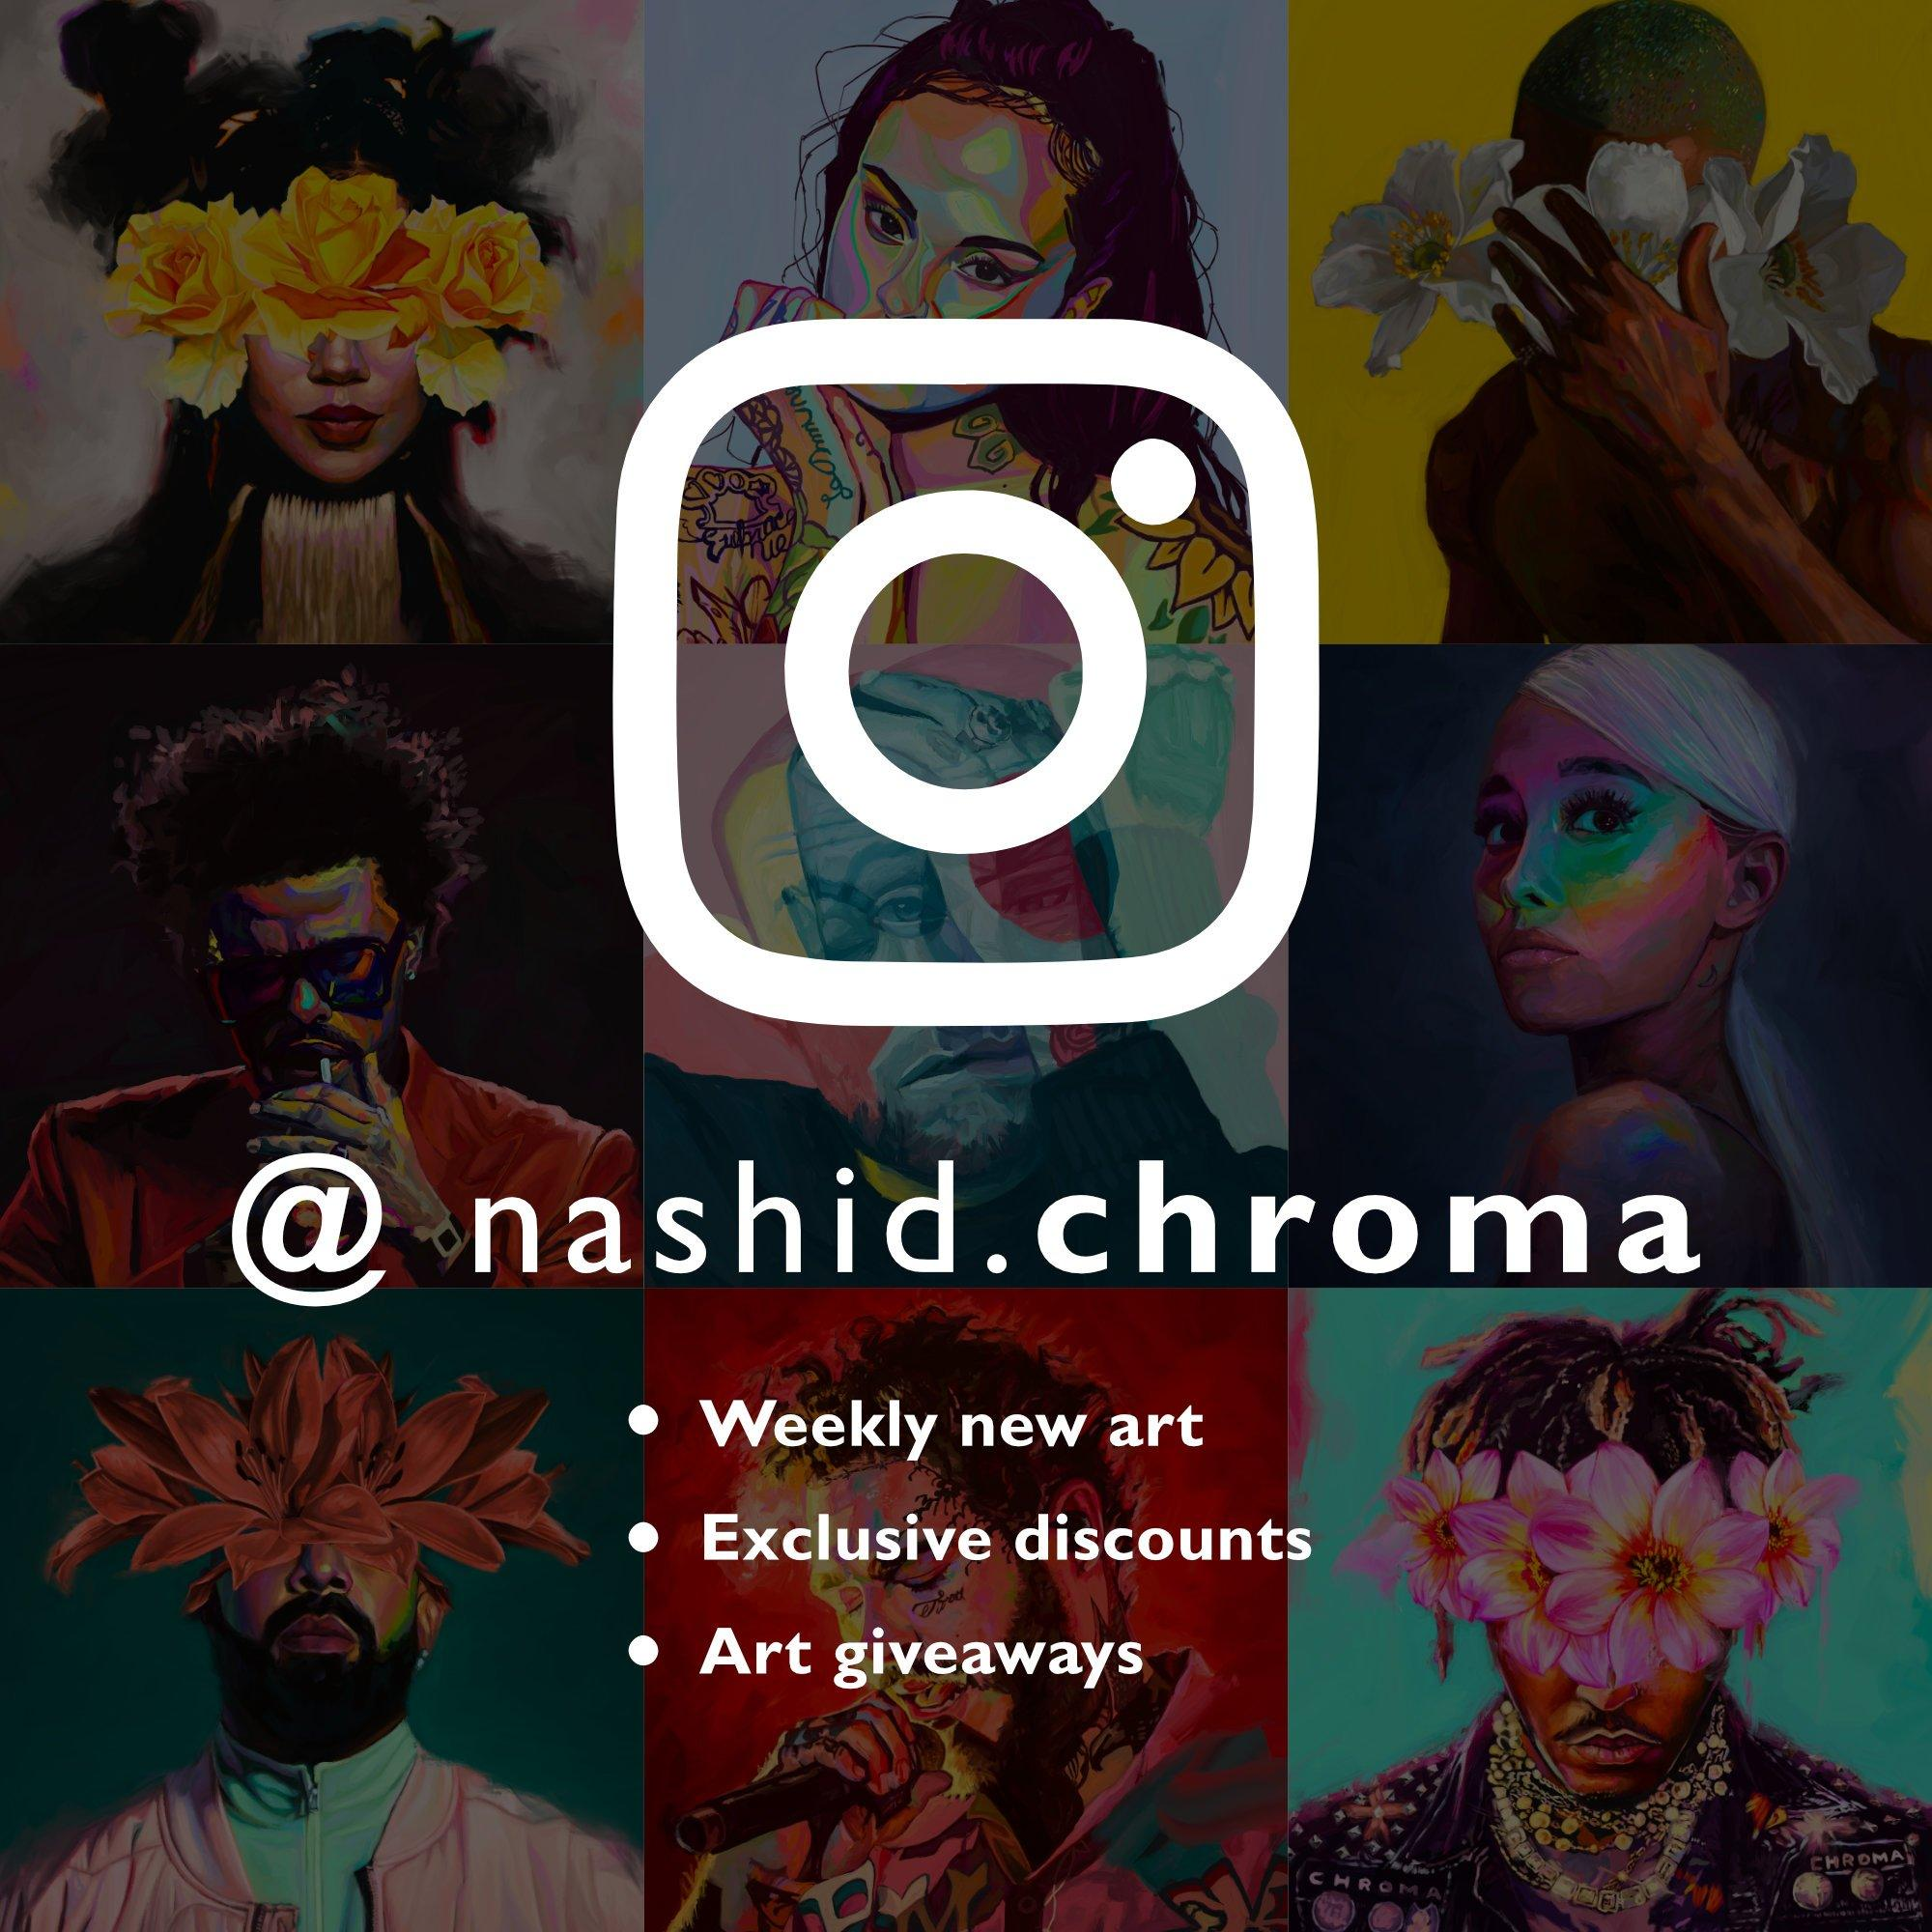 L $ D Art Nashid Chroma